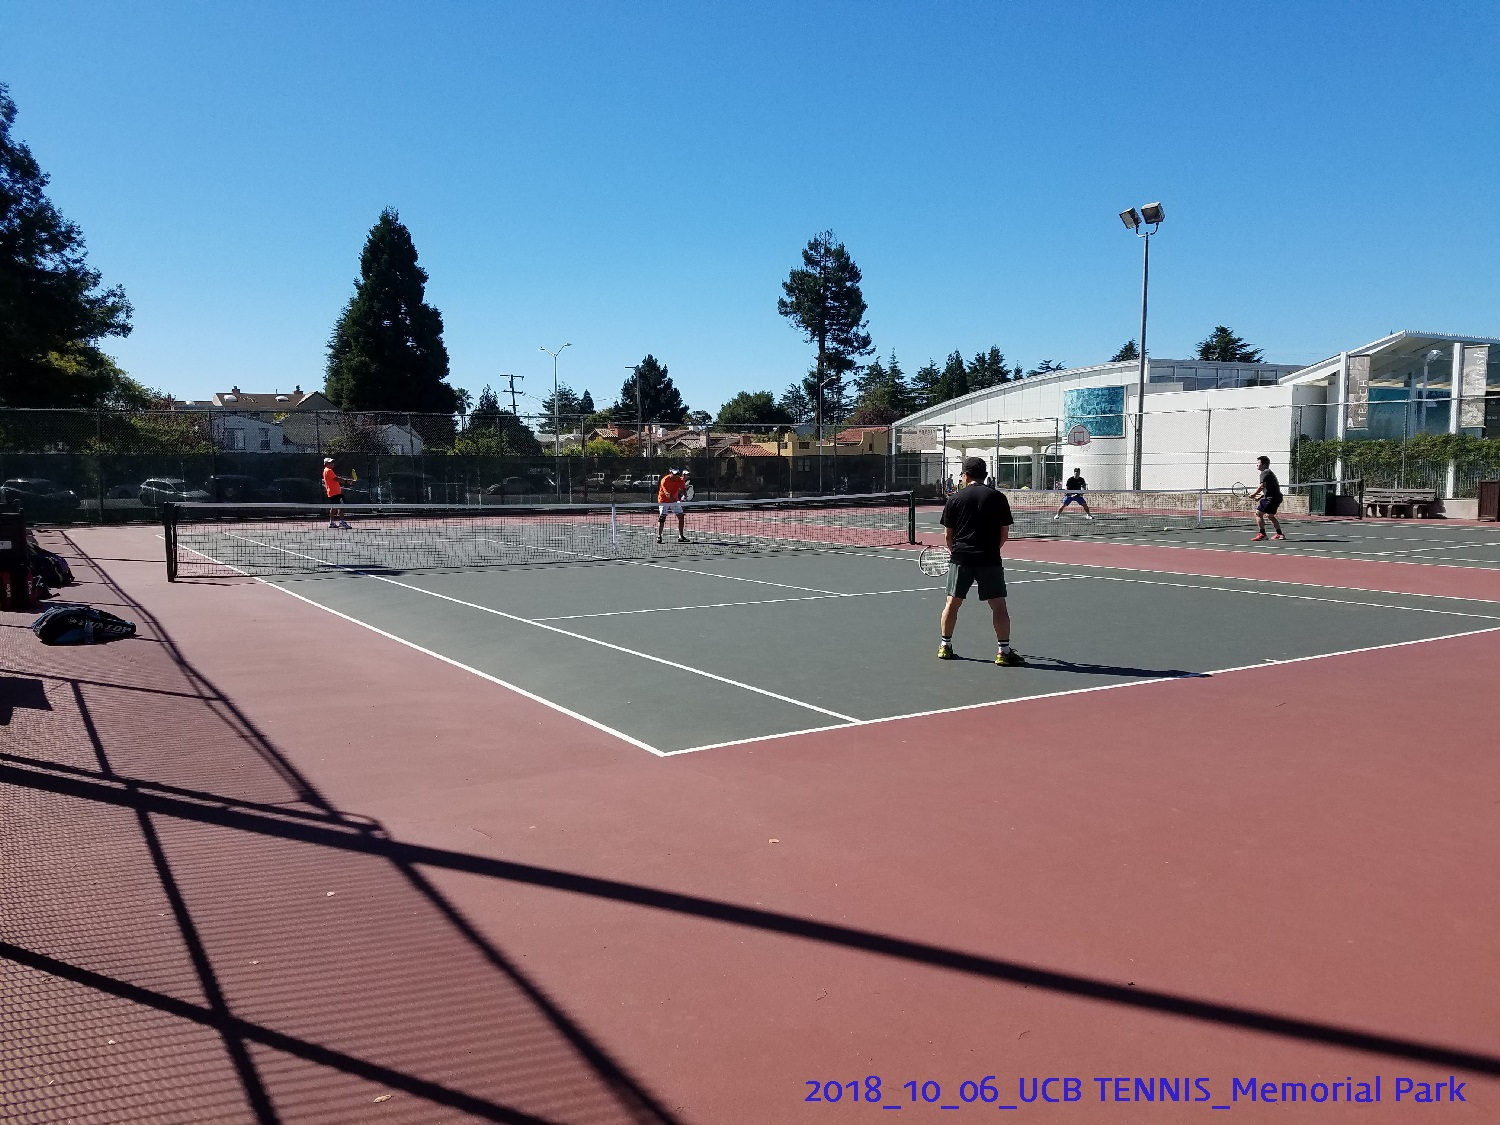 resized_2018_10_06_UCB Tennis at Memorial Park_113837.jpg